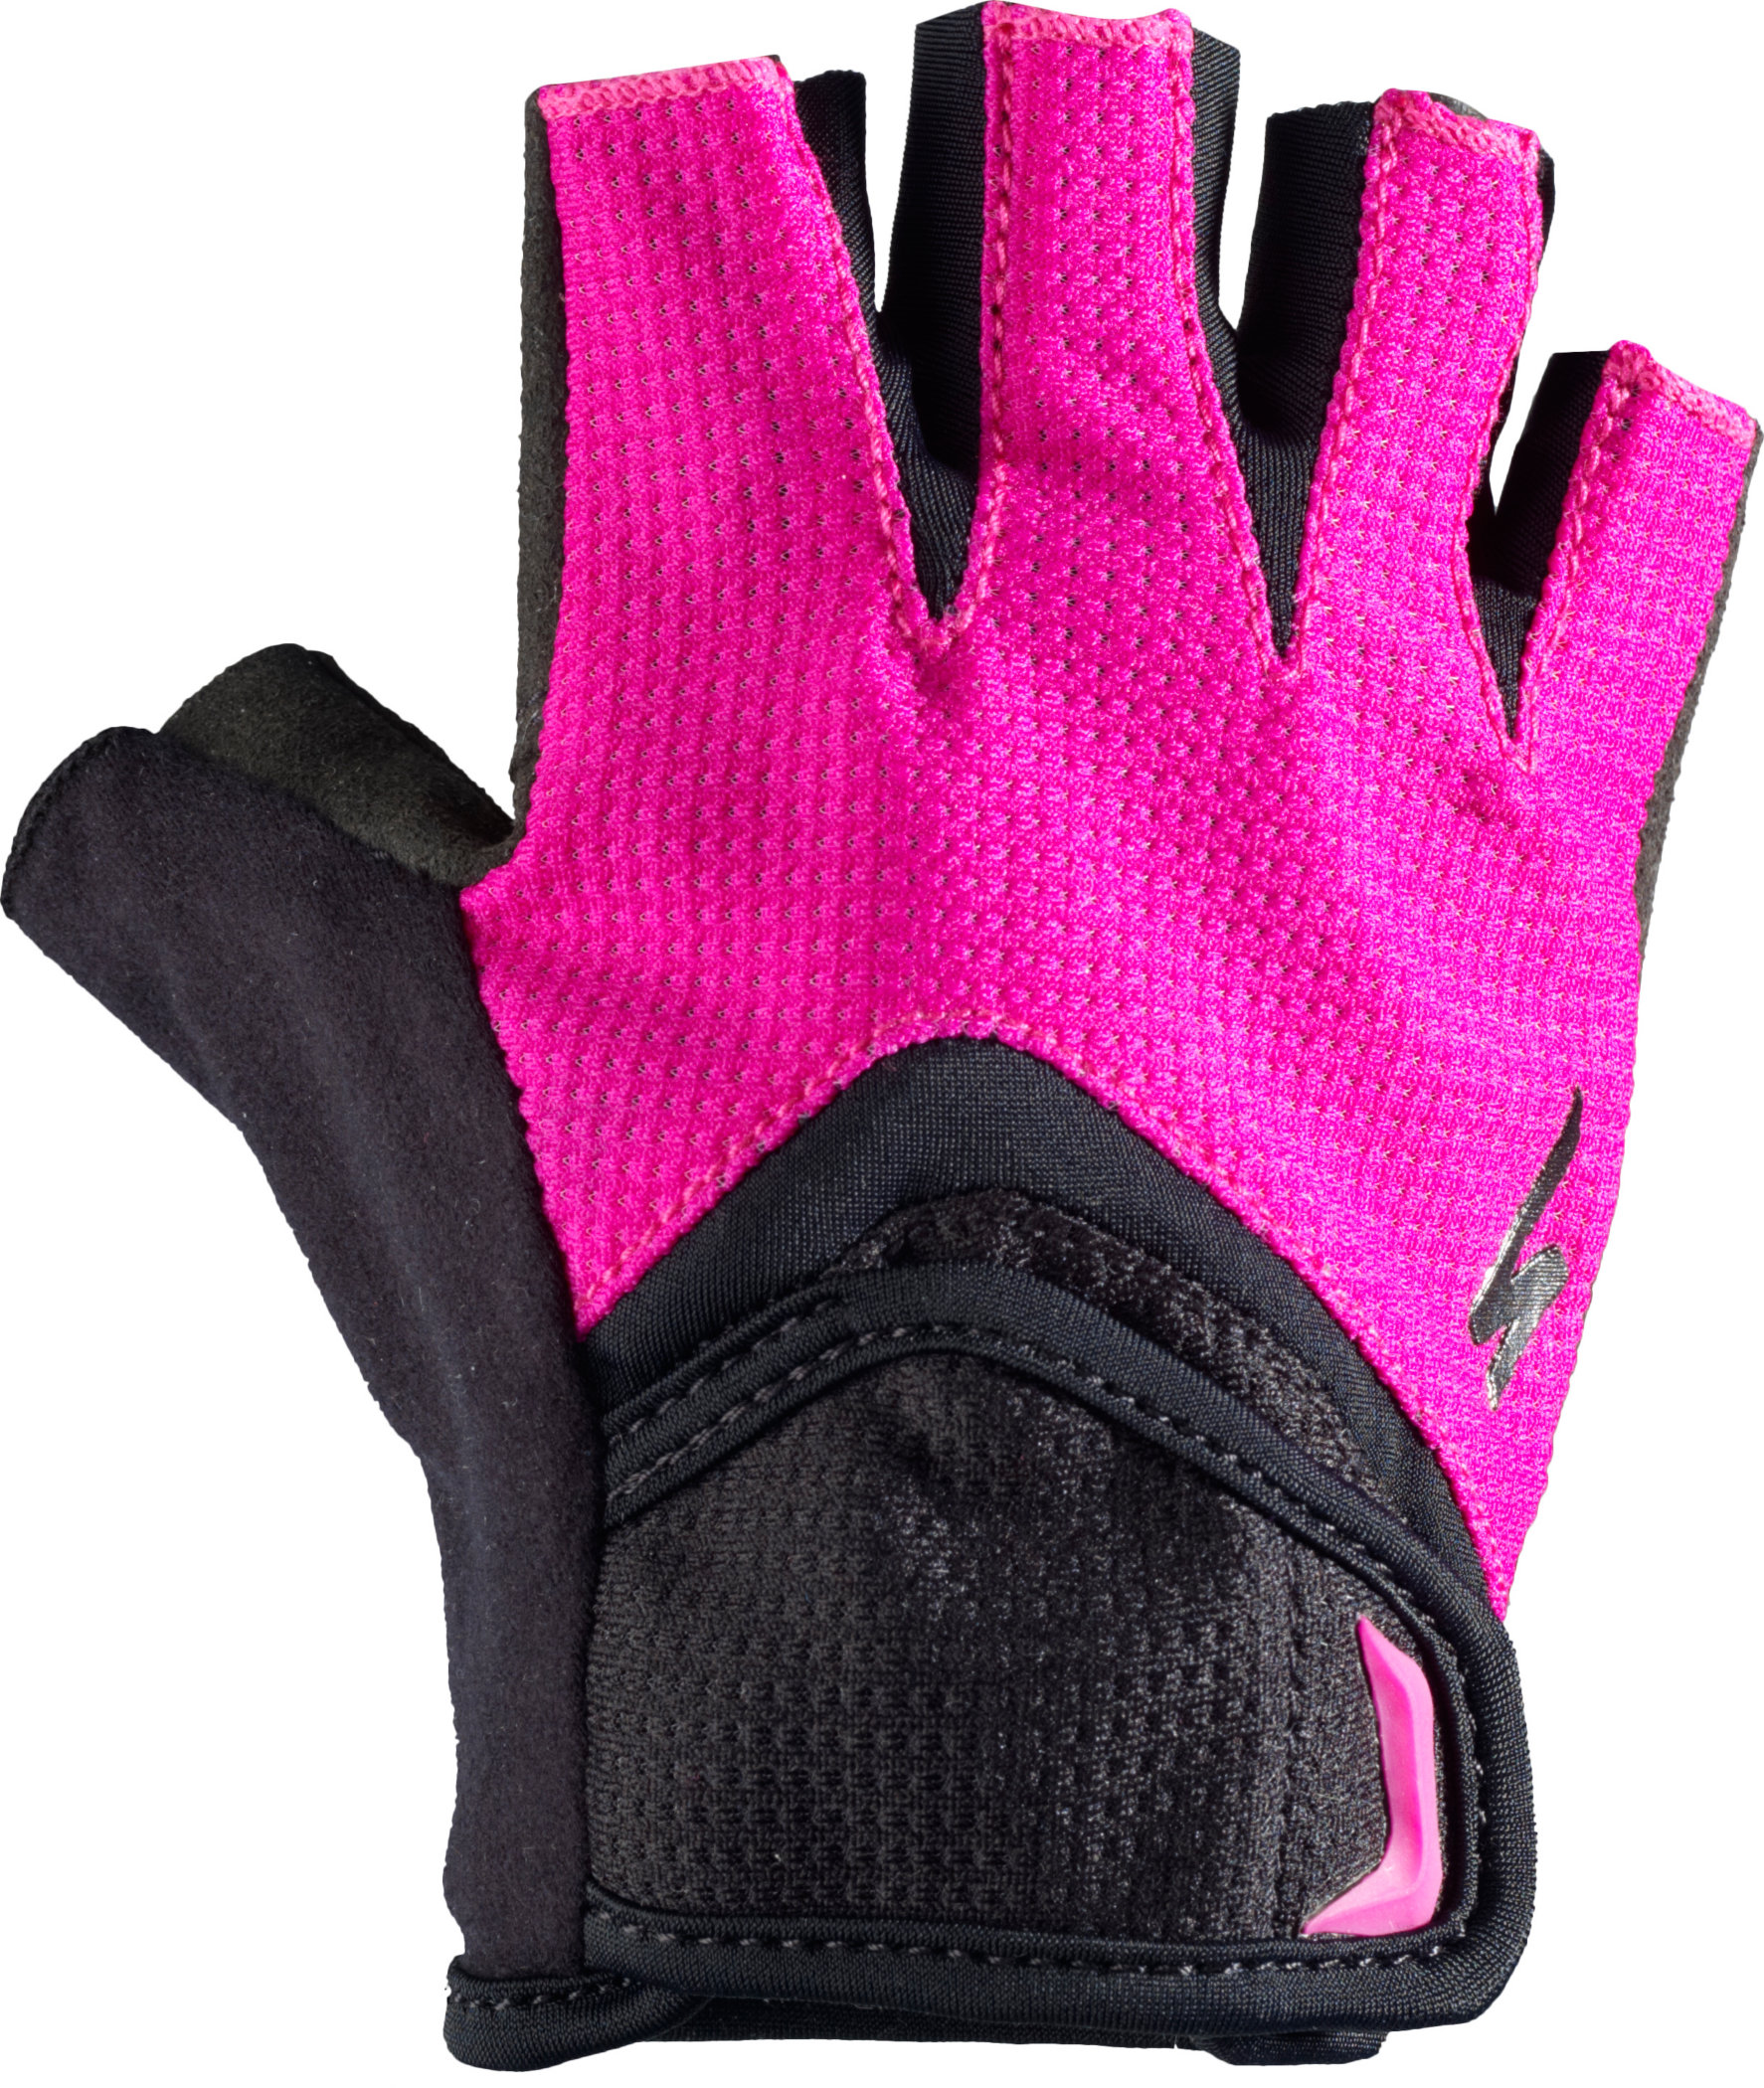 SPECIALIZED BG KIDS GLOVE SF BLK/PNK L - Pulsschlag Bike+Sport